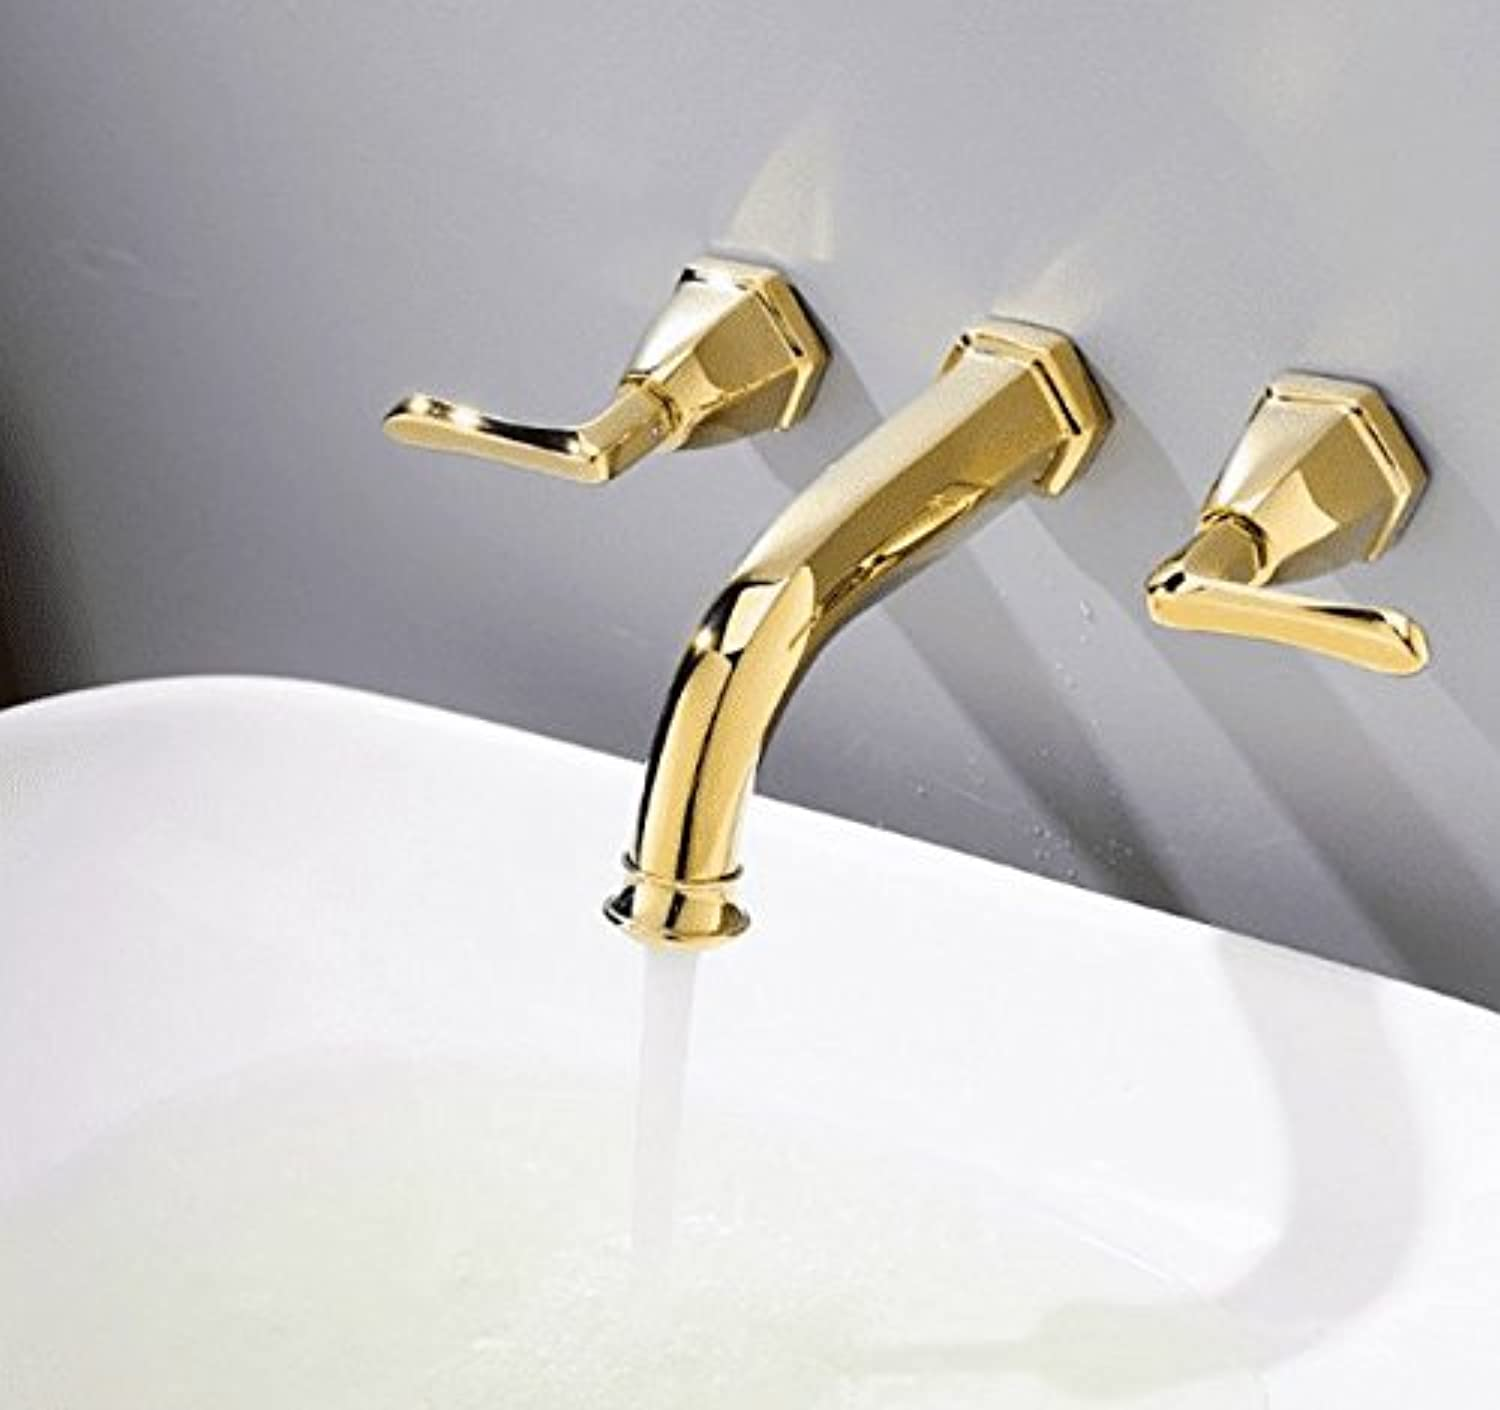 All Copper Three Three Three Holes Into The Wall, Hot and Cold Water Faucet, Dark Basin, Faucet, gold, European Three Hole Faucet. 119d68